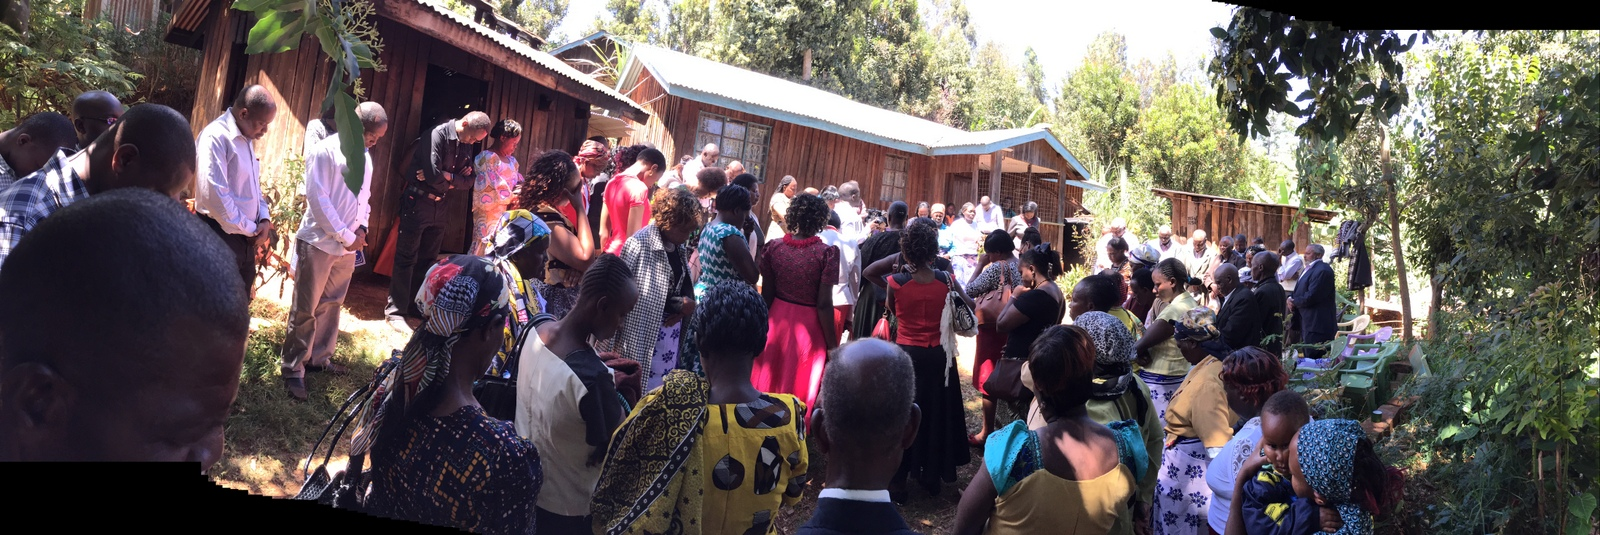 The arriving party of Shammah's family and friends is welcomed with song by the family and friends of the fiancée. The proposed marriage is inter-tribal (a Kamba marrying into a Kikuyu family), and so the ceremony and pageantry was deliberate and scripted.  It was a beautiful ceremony.